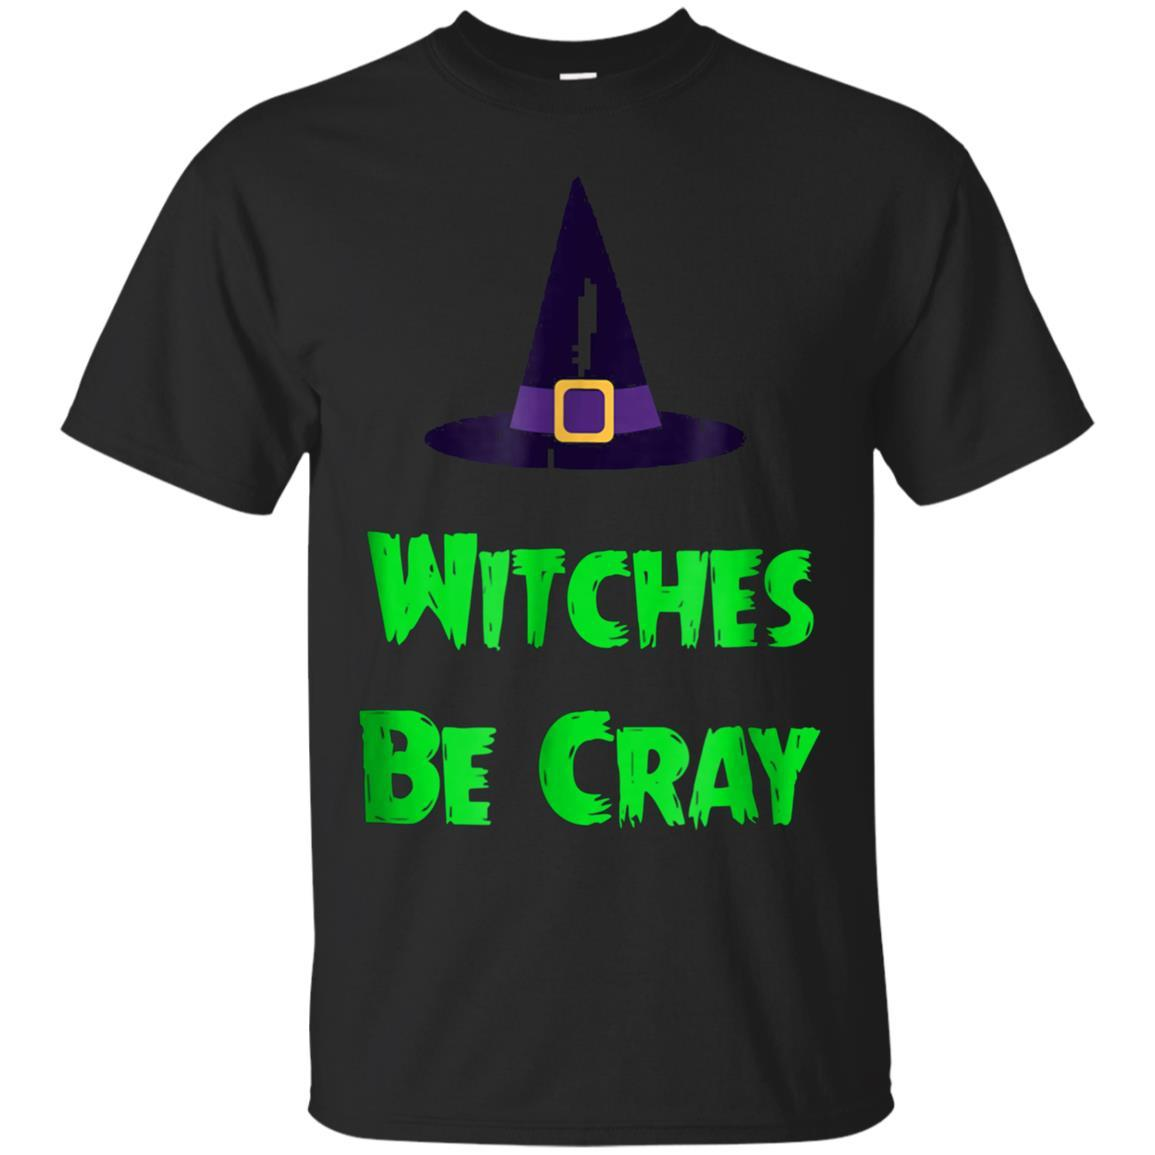 Witches Be Cray Shirt Crazy Witch Funny Halloween Shirts